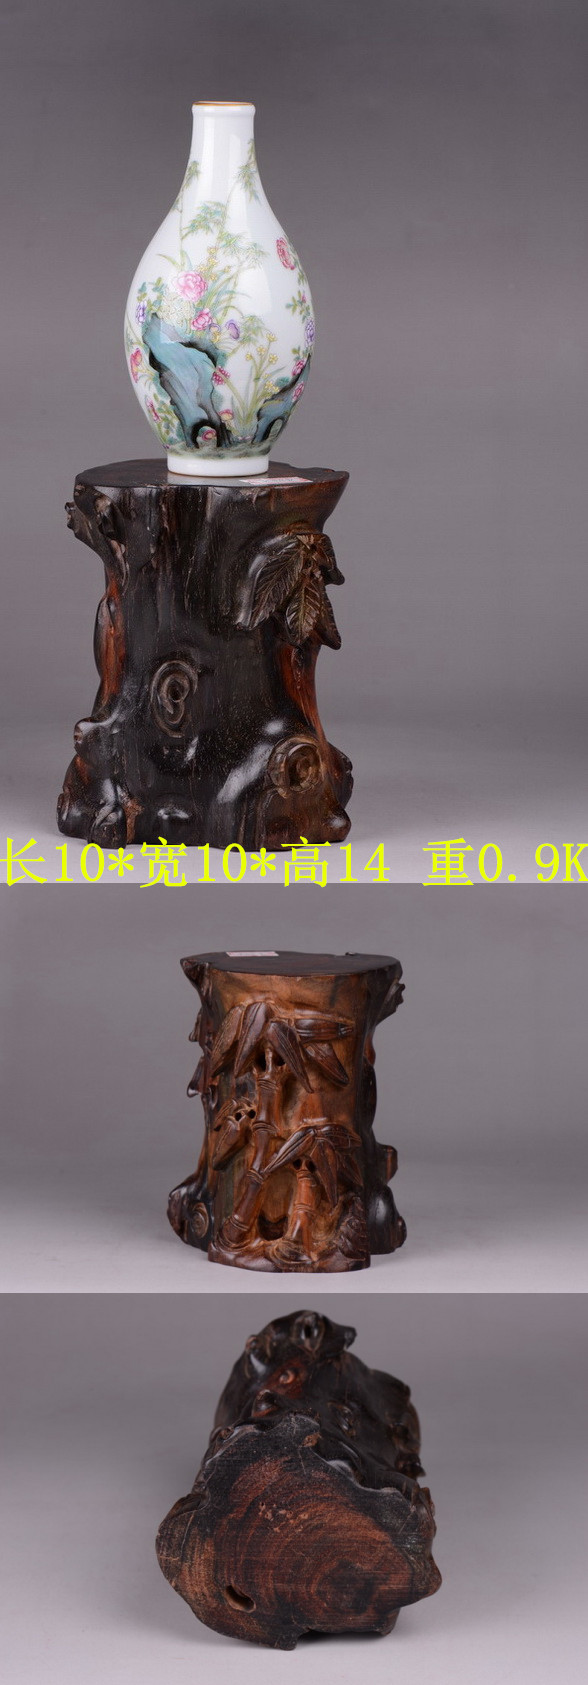 Red rosewood carving root carving handicraft furnishing articles stone vases, purple sand teapot base can be excavated base of solid wood